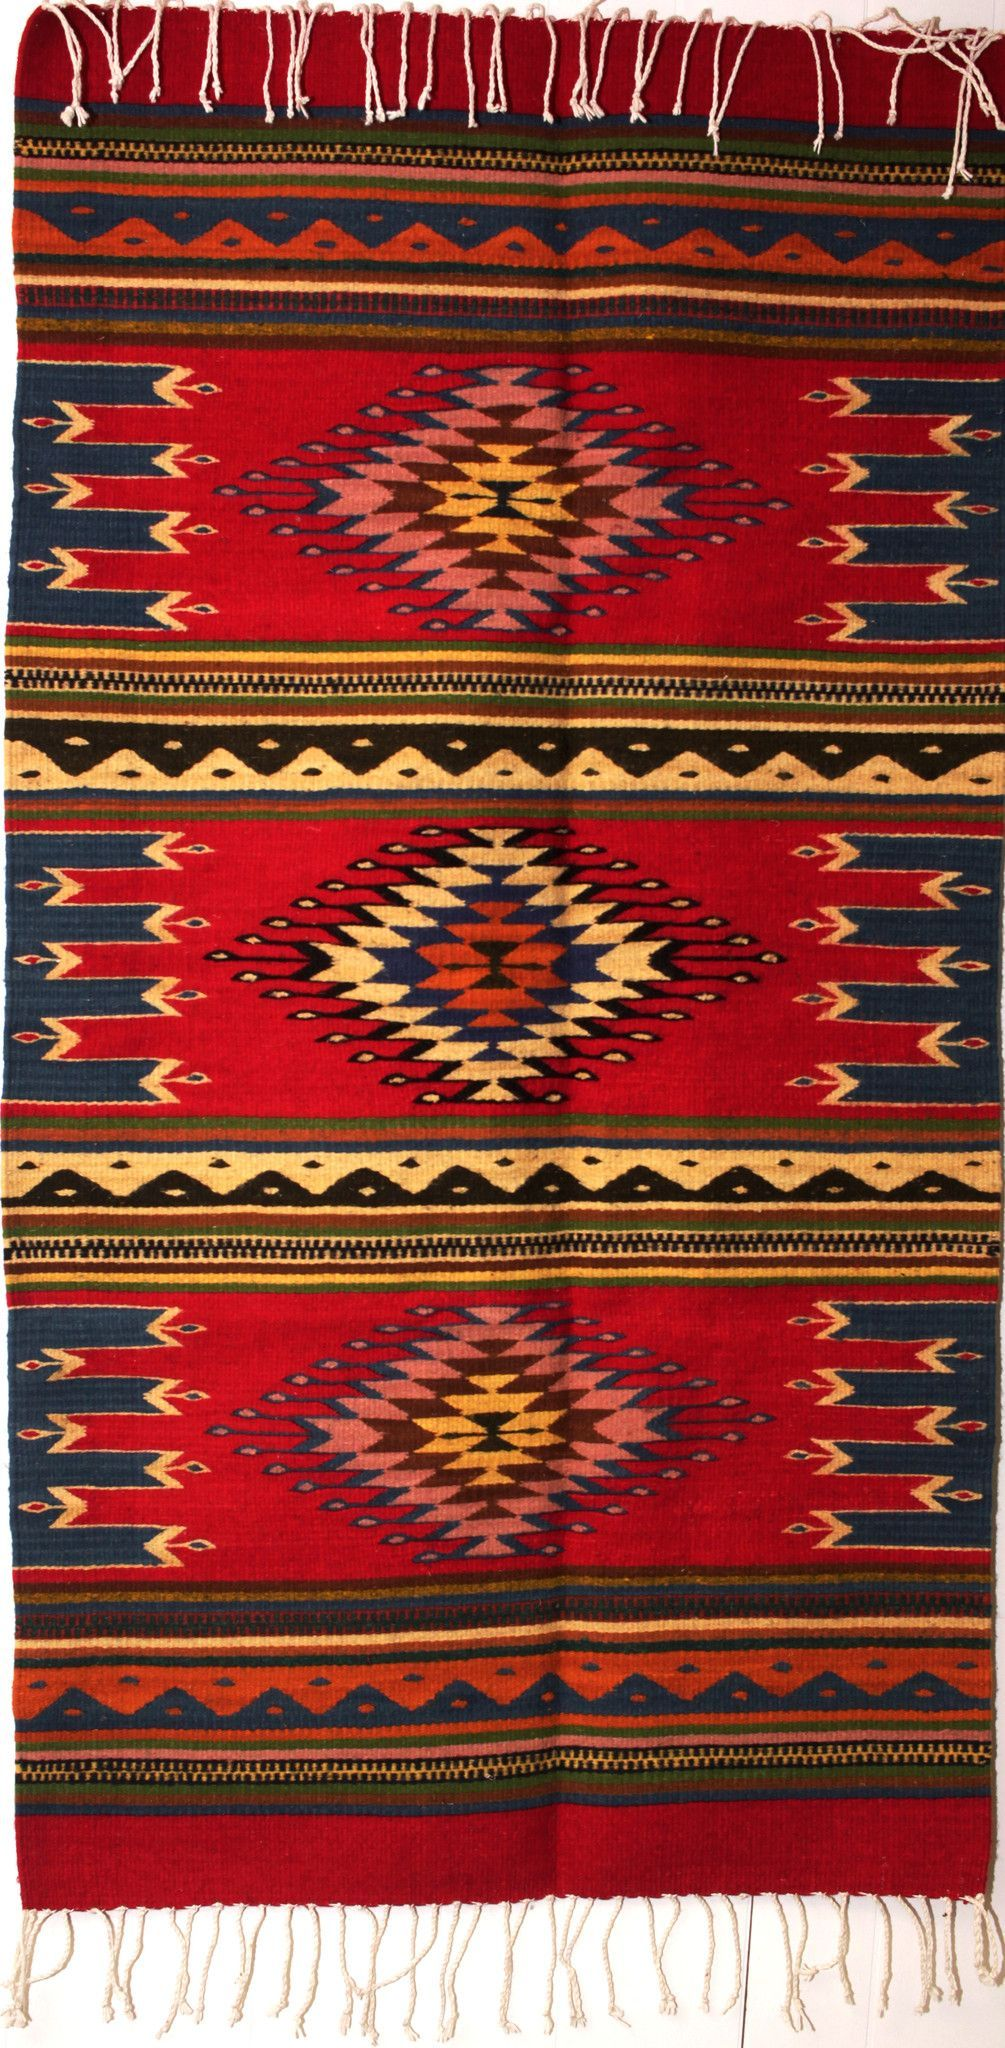 Zapotec Rug Hand Woven 100 Wool Measures 30 X 60 Made In Oaxaca